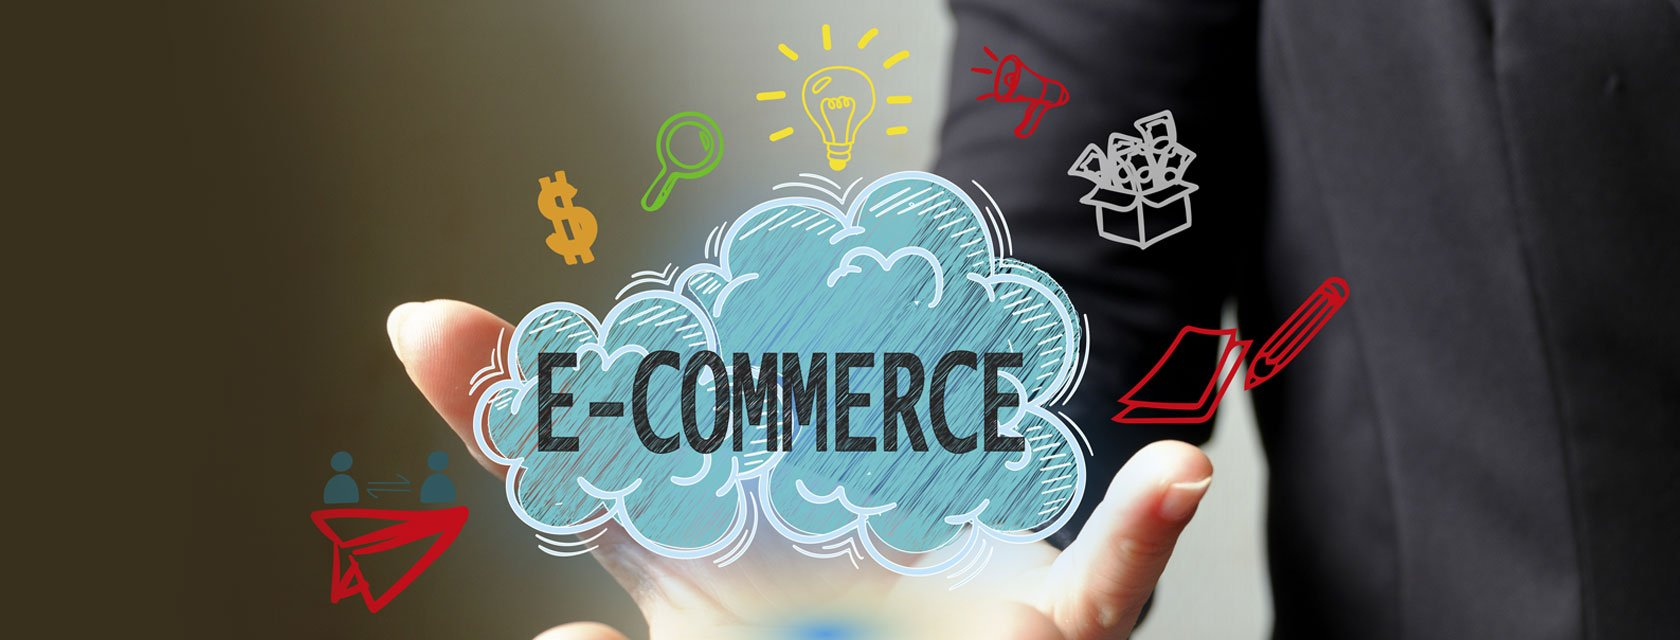 eCommerce Marketing Trends 2021 every brand should know